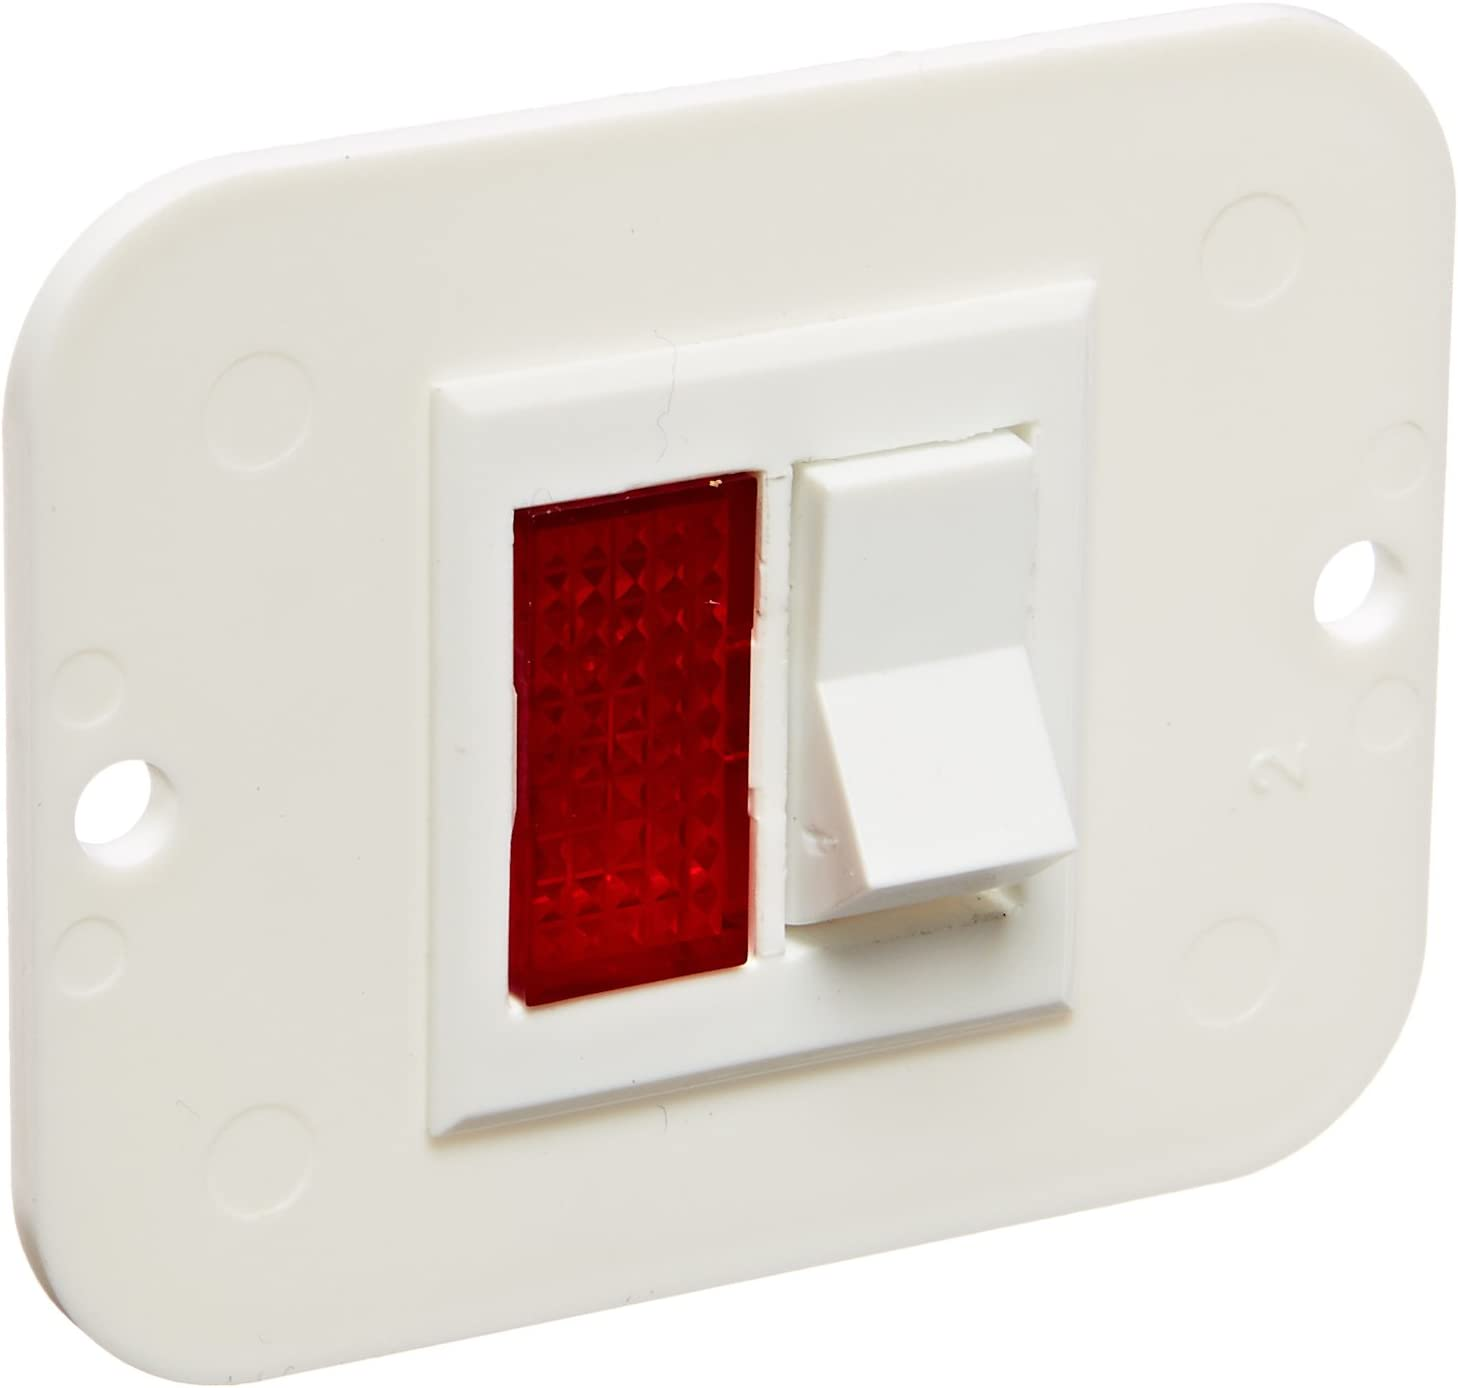 Atwood 91859 Water Heater Kit Purchase Package Switch Sale Special Price